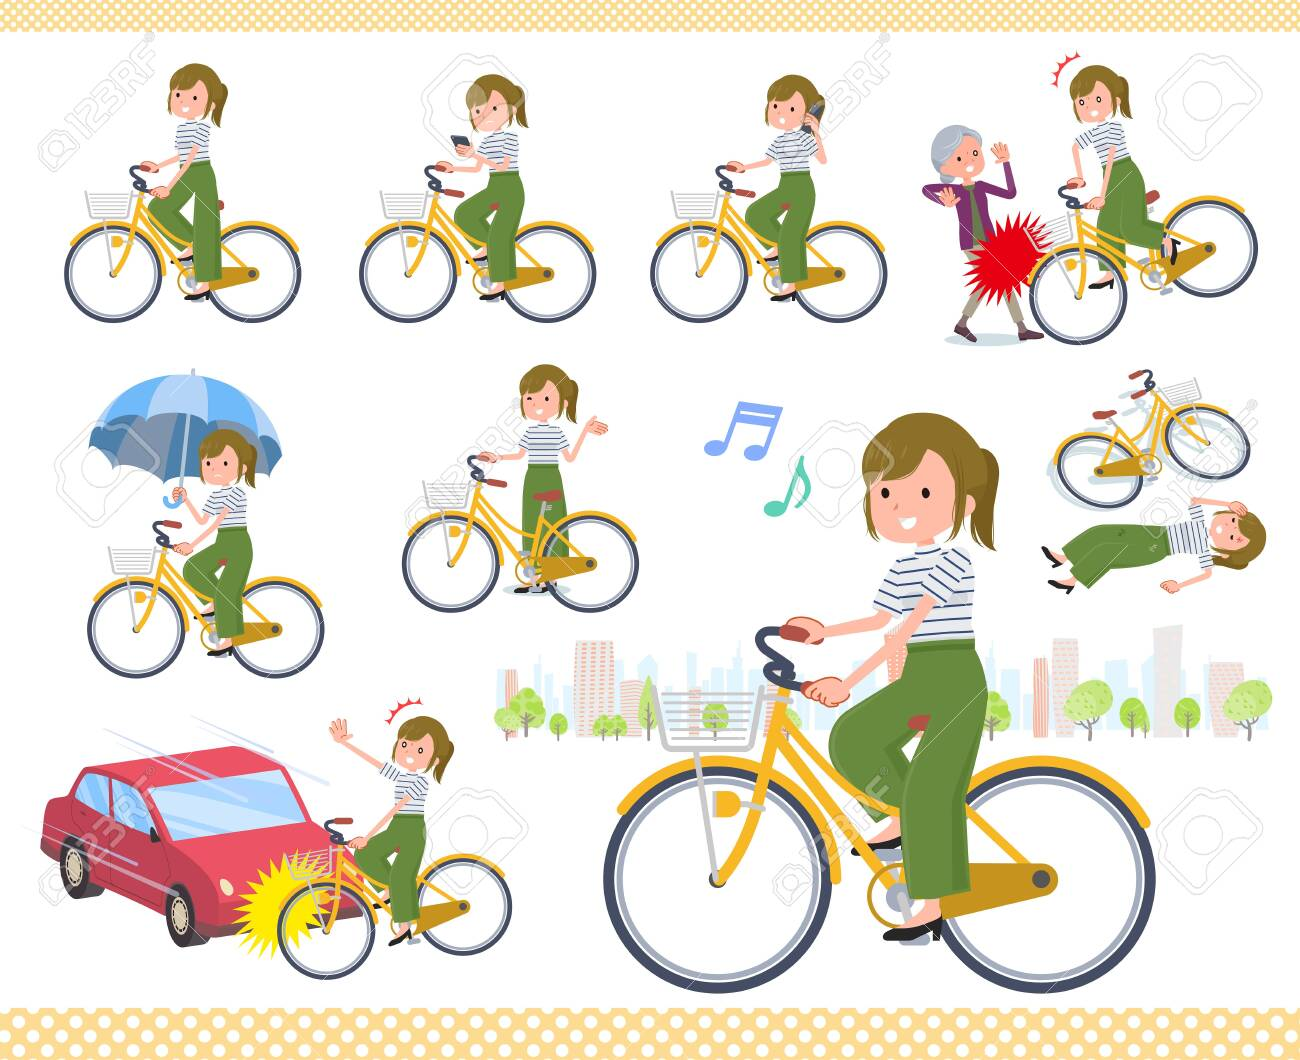 A set of casual fashion women riding a city cycle.There are actions on manners and troubles.It's vector art so it's easy to edit. - 137369771